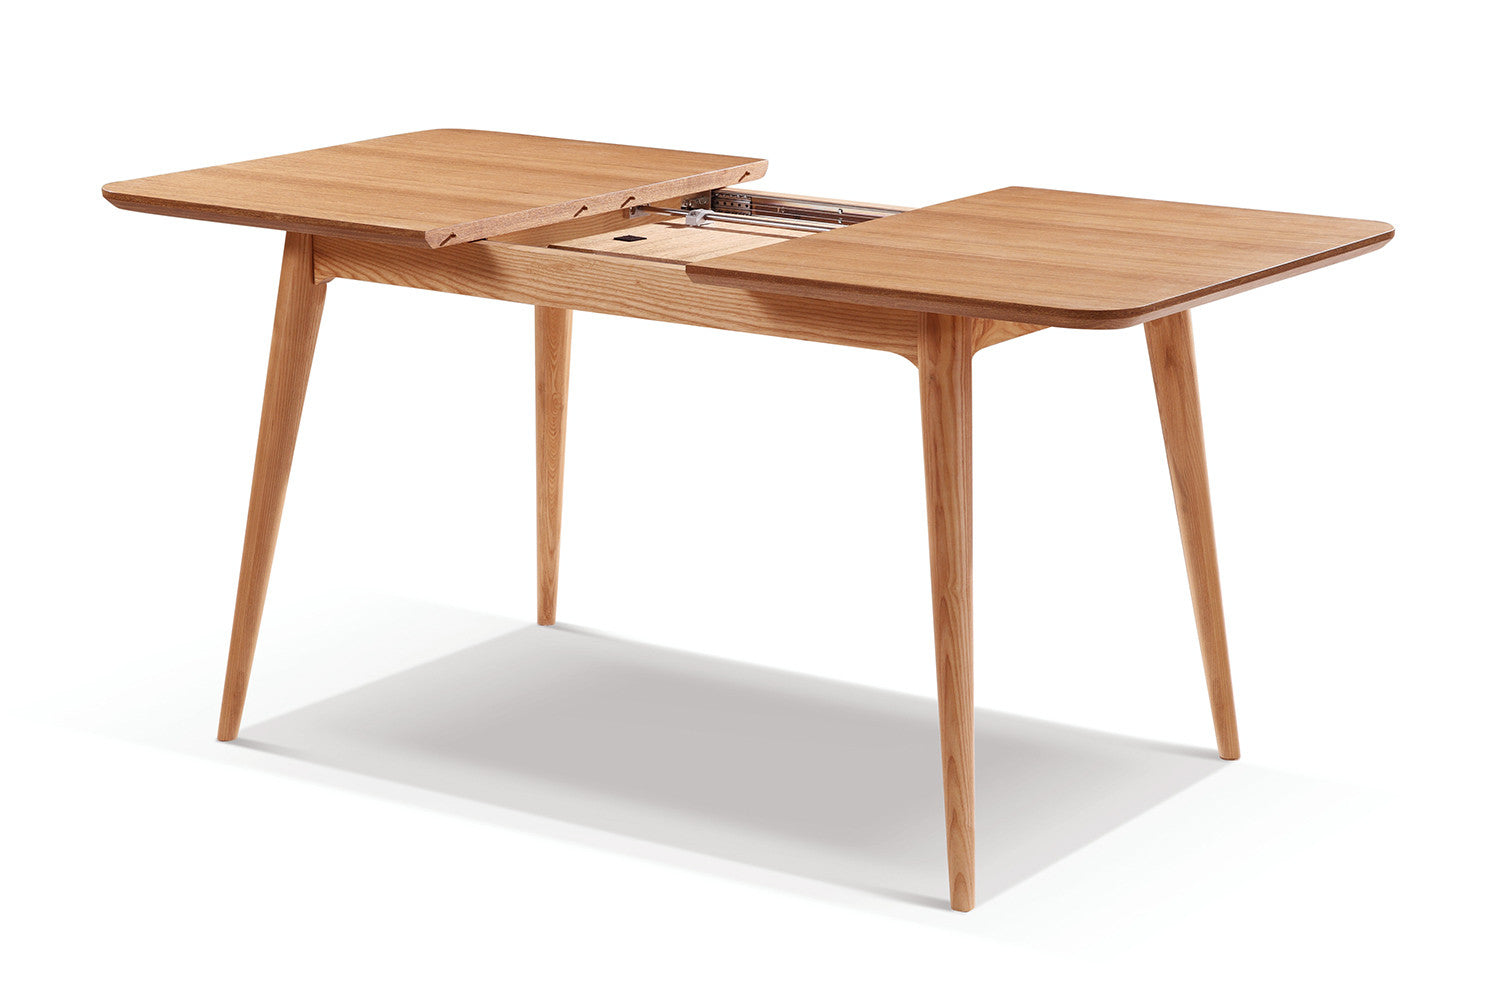 Table de salle manger extensible en bois adda dewarens for Table a manger 120 cm extensible